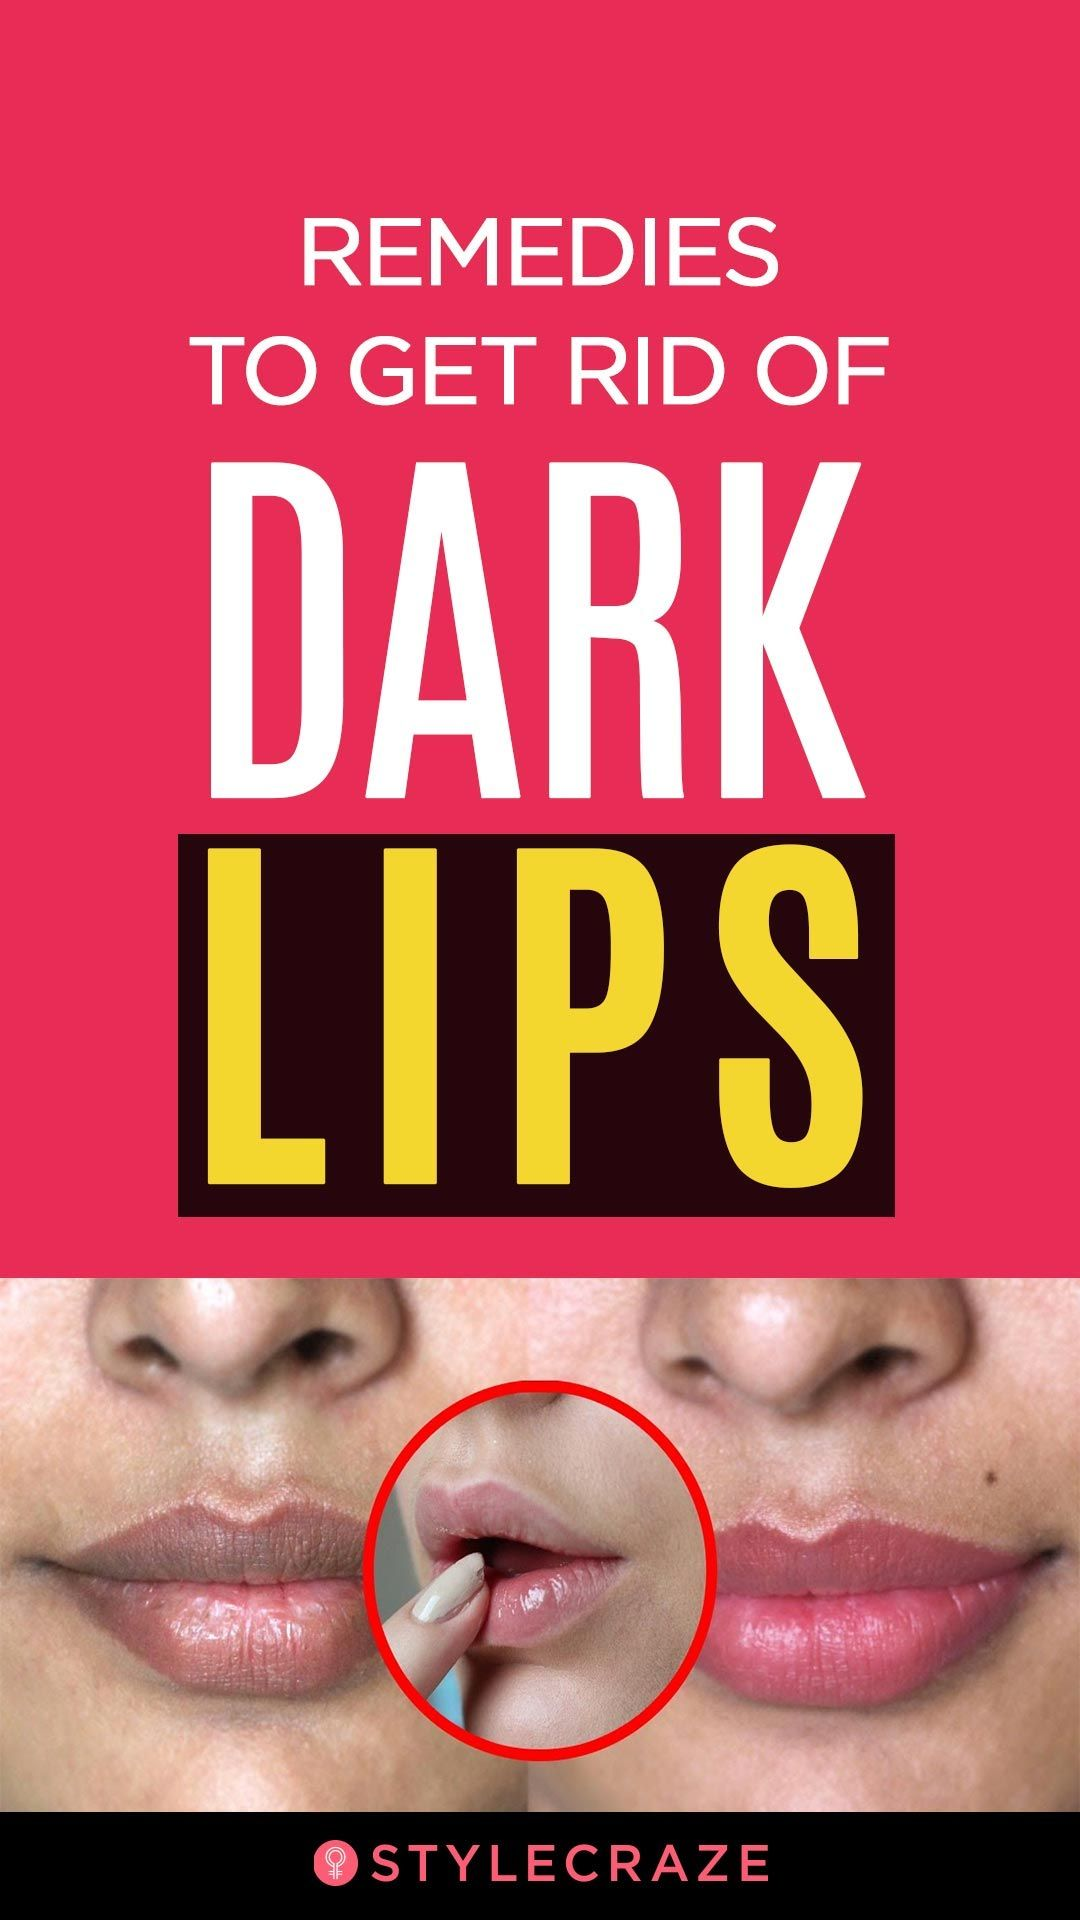 9 Remedies To Get Rid Of Dark Lips  Dark lips, Lips, Natural hair